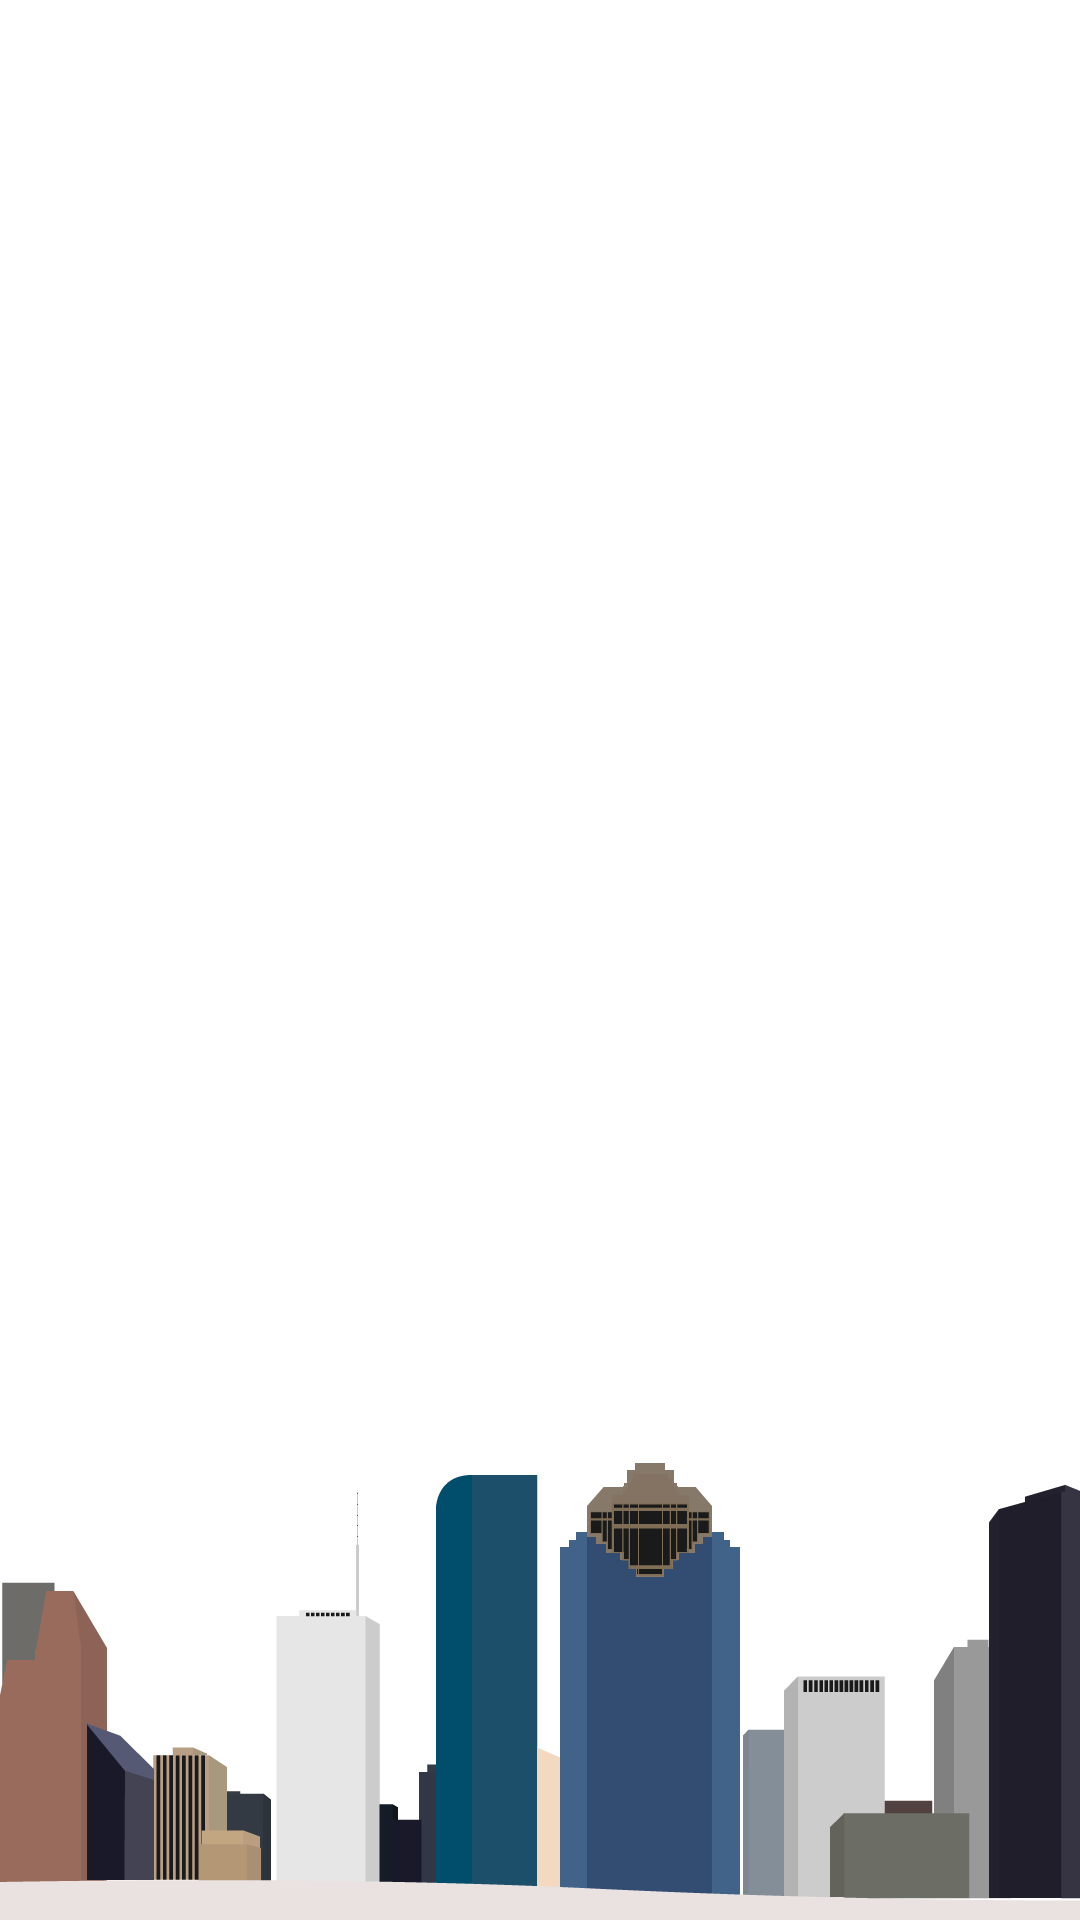 Snapchat Filters PNG Transparent Images 22.